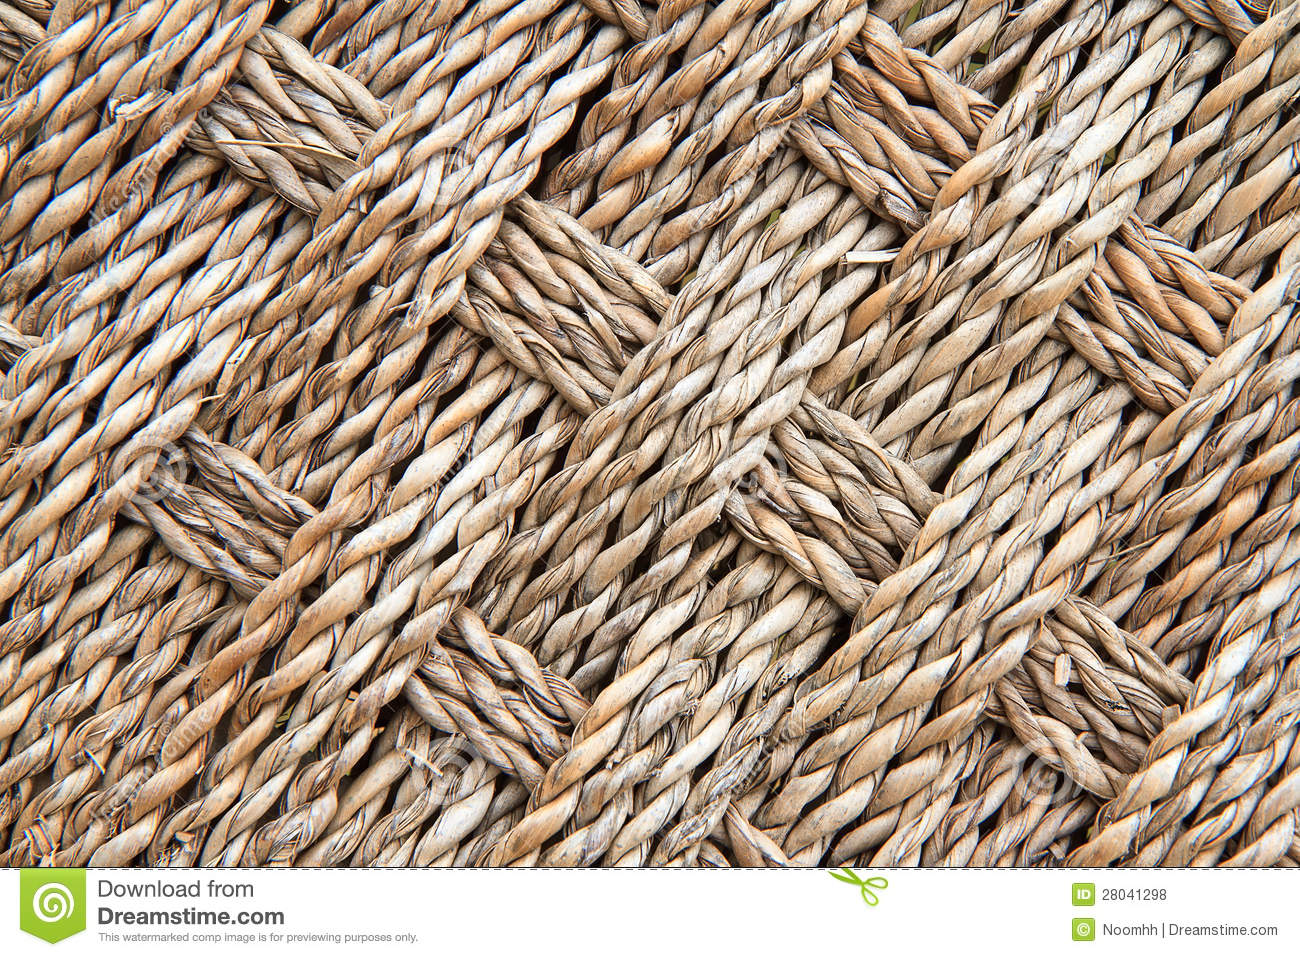 Woven rattan patterns royalty free stock photos image for Bamboo weaving tutorial